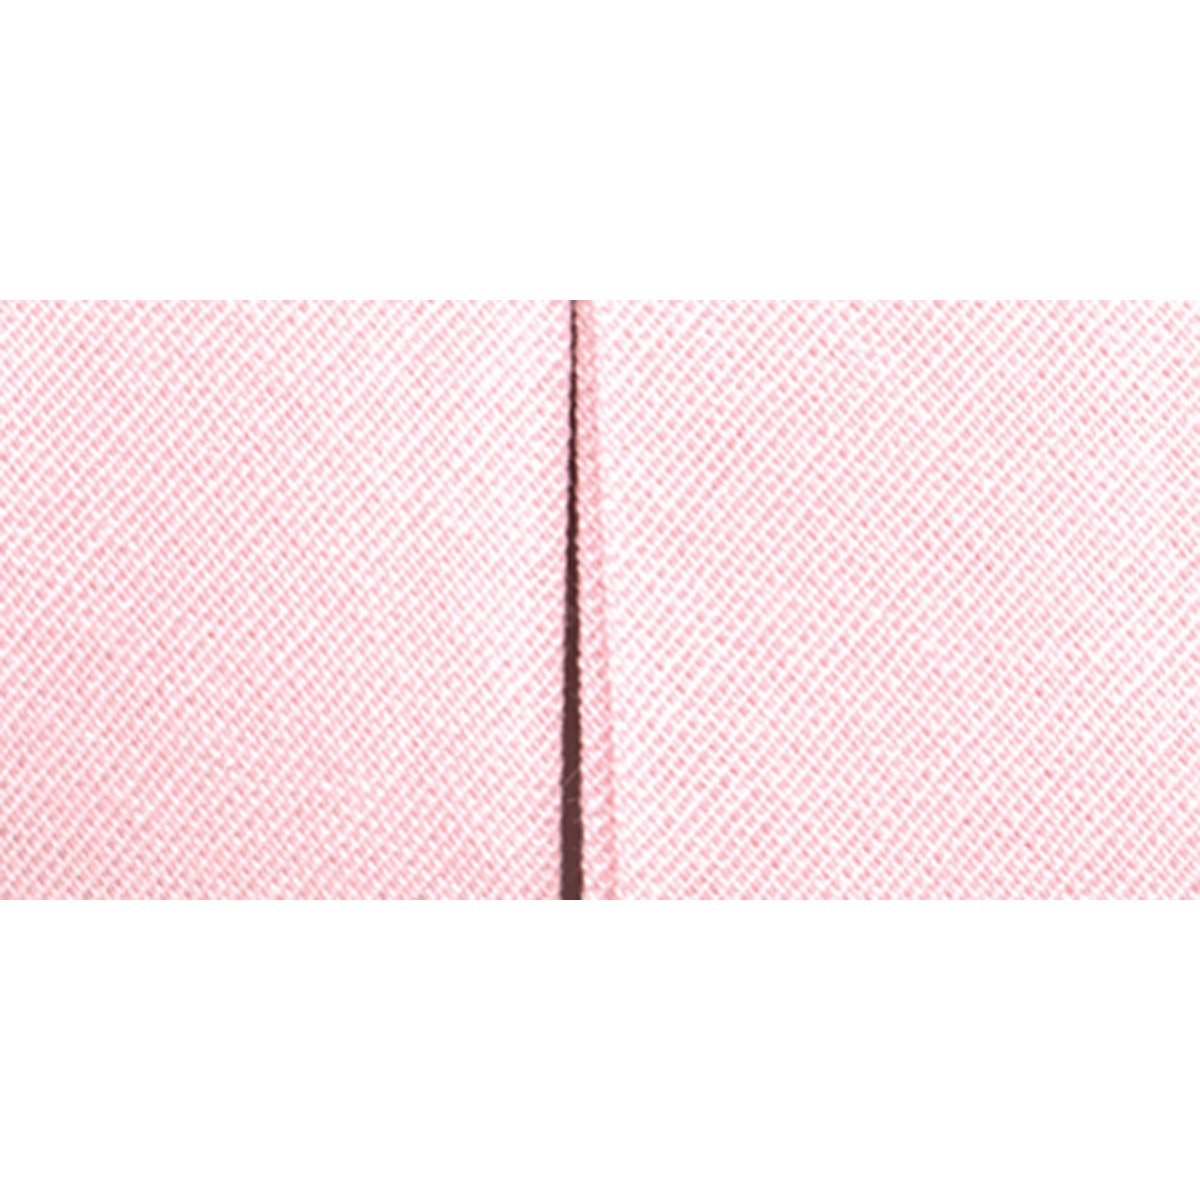 Wrights 117-706-022 Double Fold Quilt Binding Bias Tape 3-Yard Bright Pink